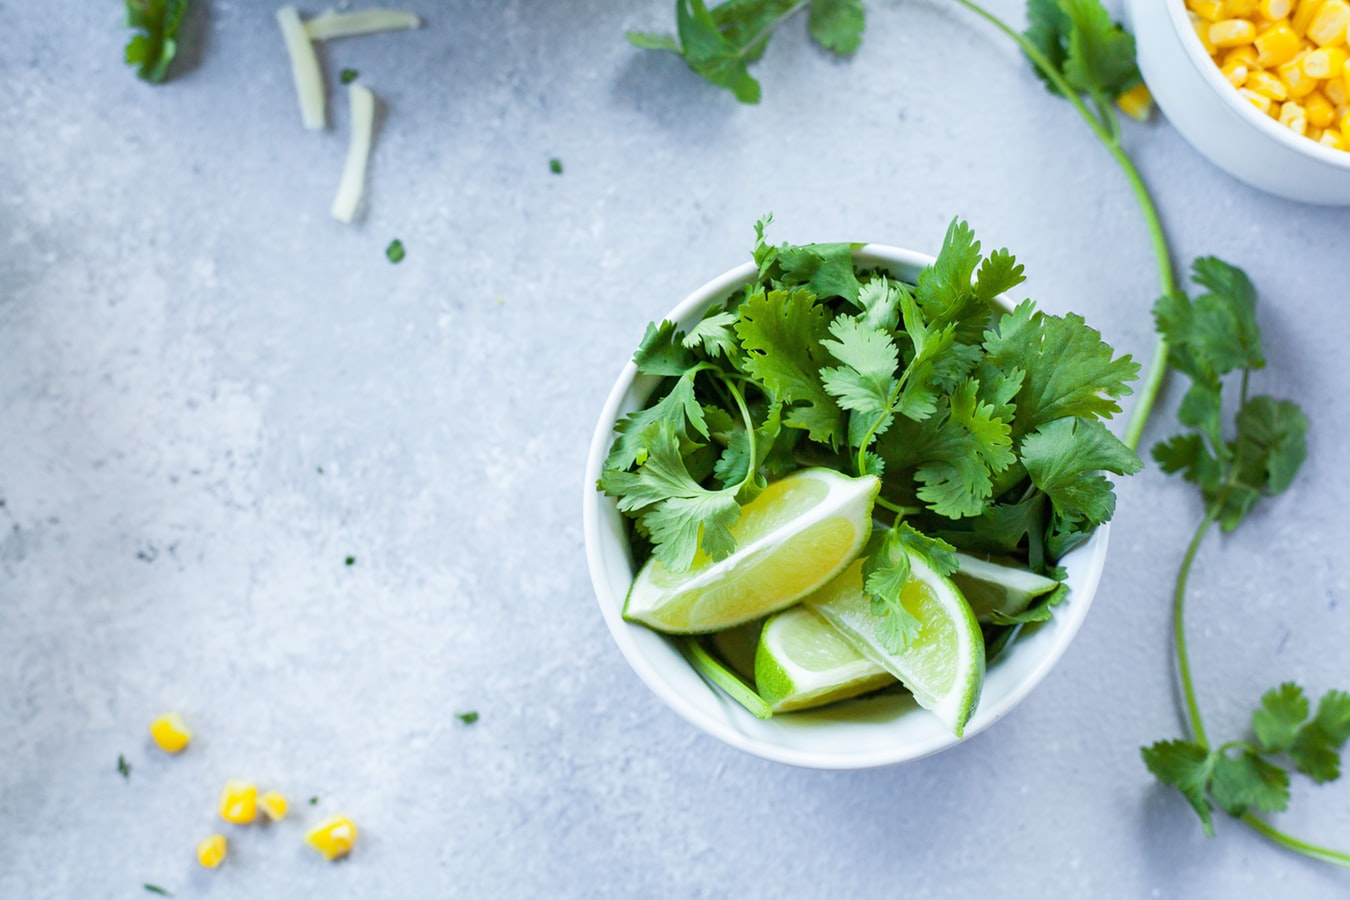 Steps to Freezing Cilantro